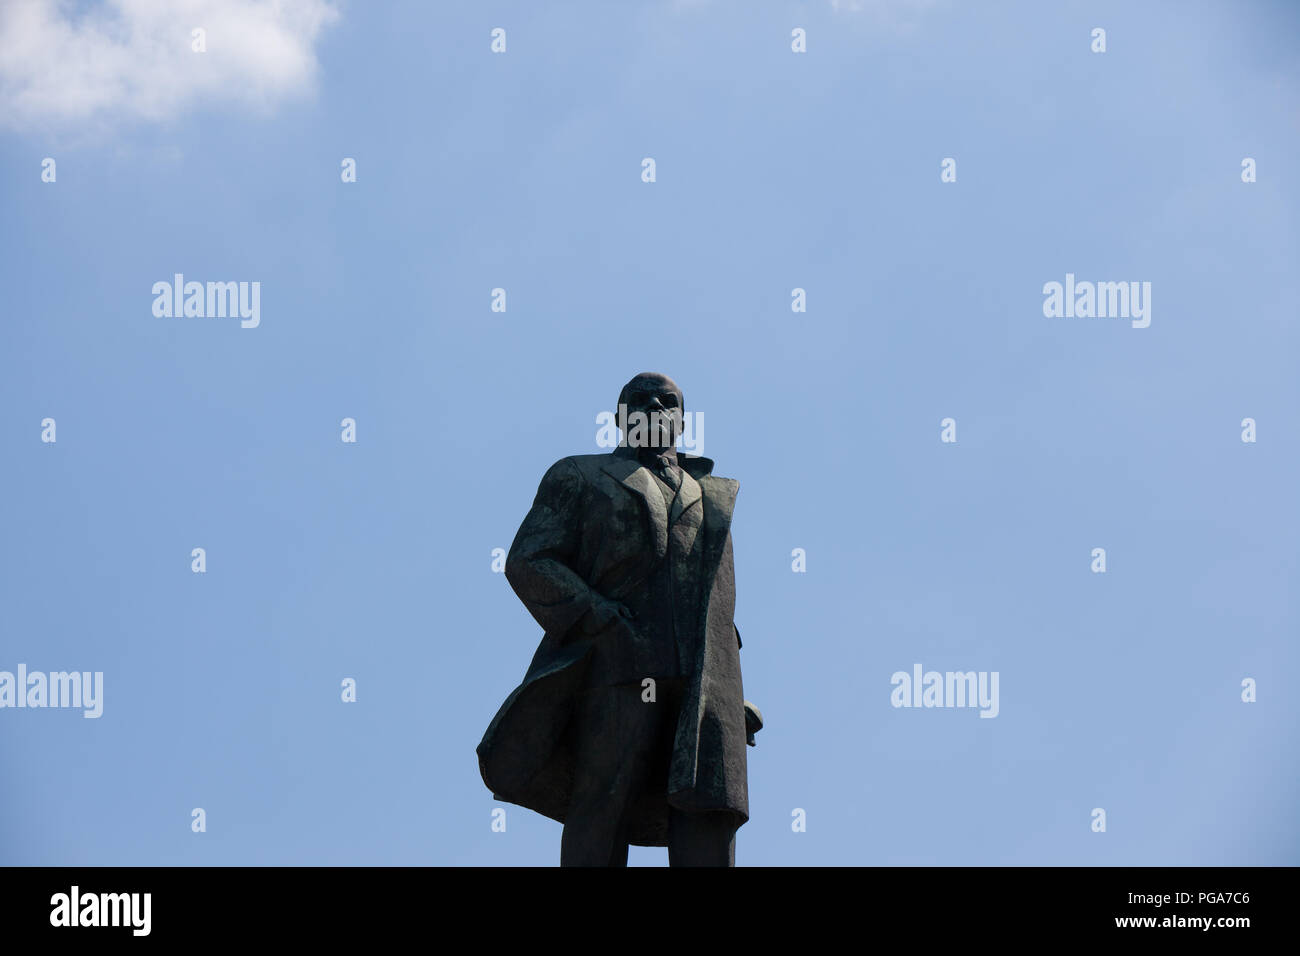 Lenin Statue from Moscow, Russia - Stock Image